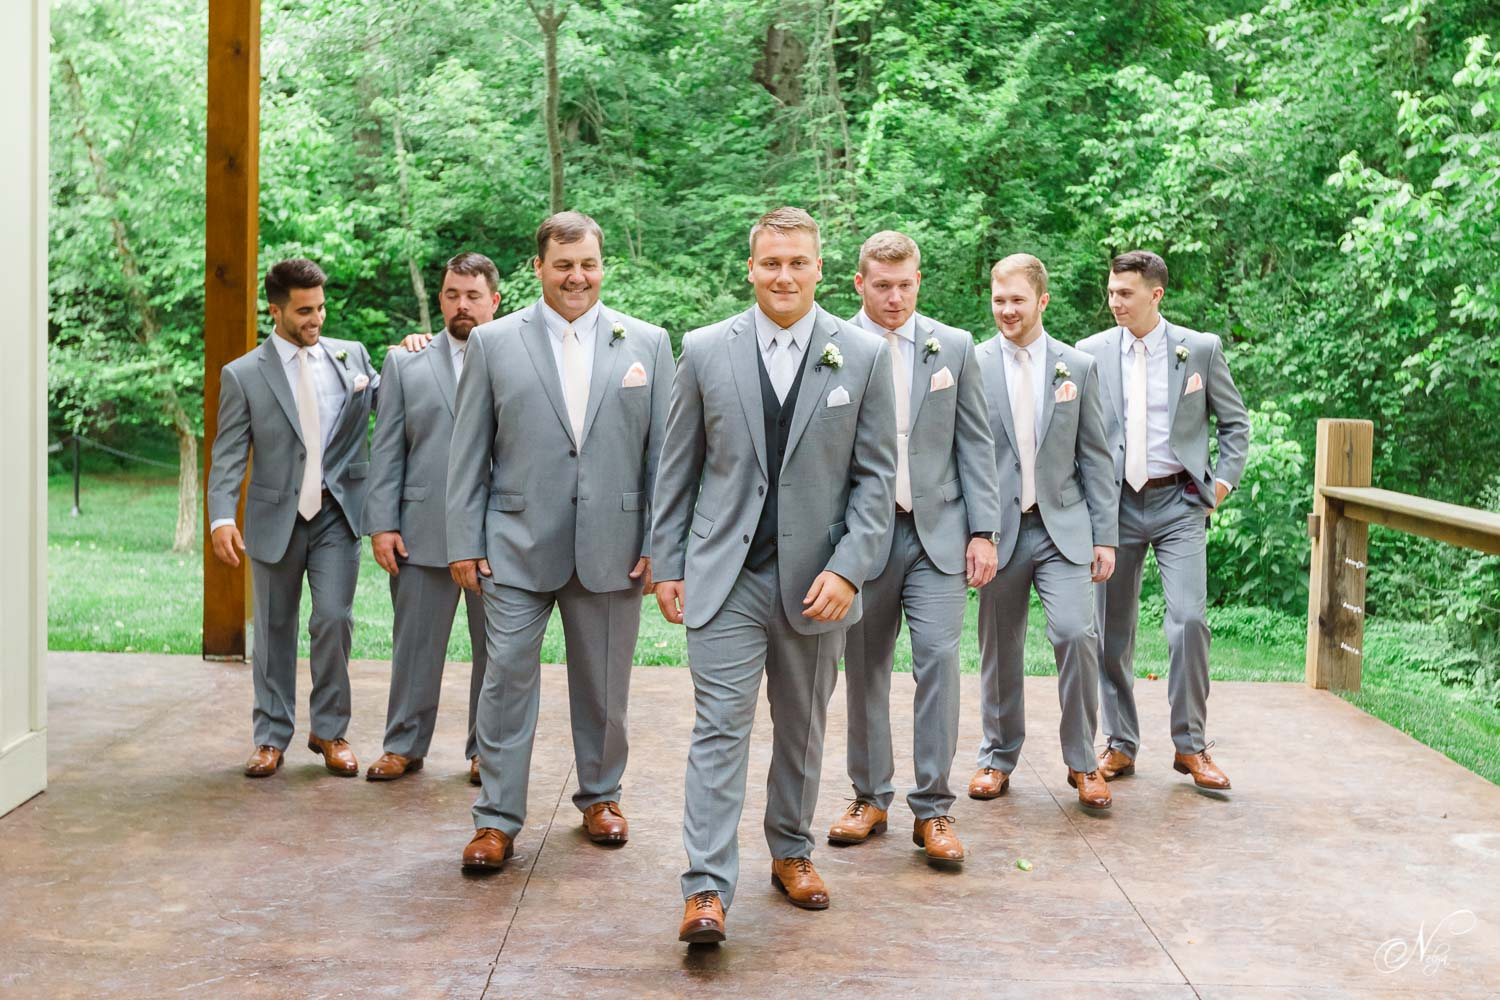 seven groomsmen and groom in gray joseph a Banks suits walking outside in the rain at Hiwassee River Weddings